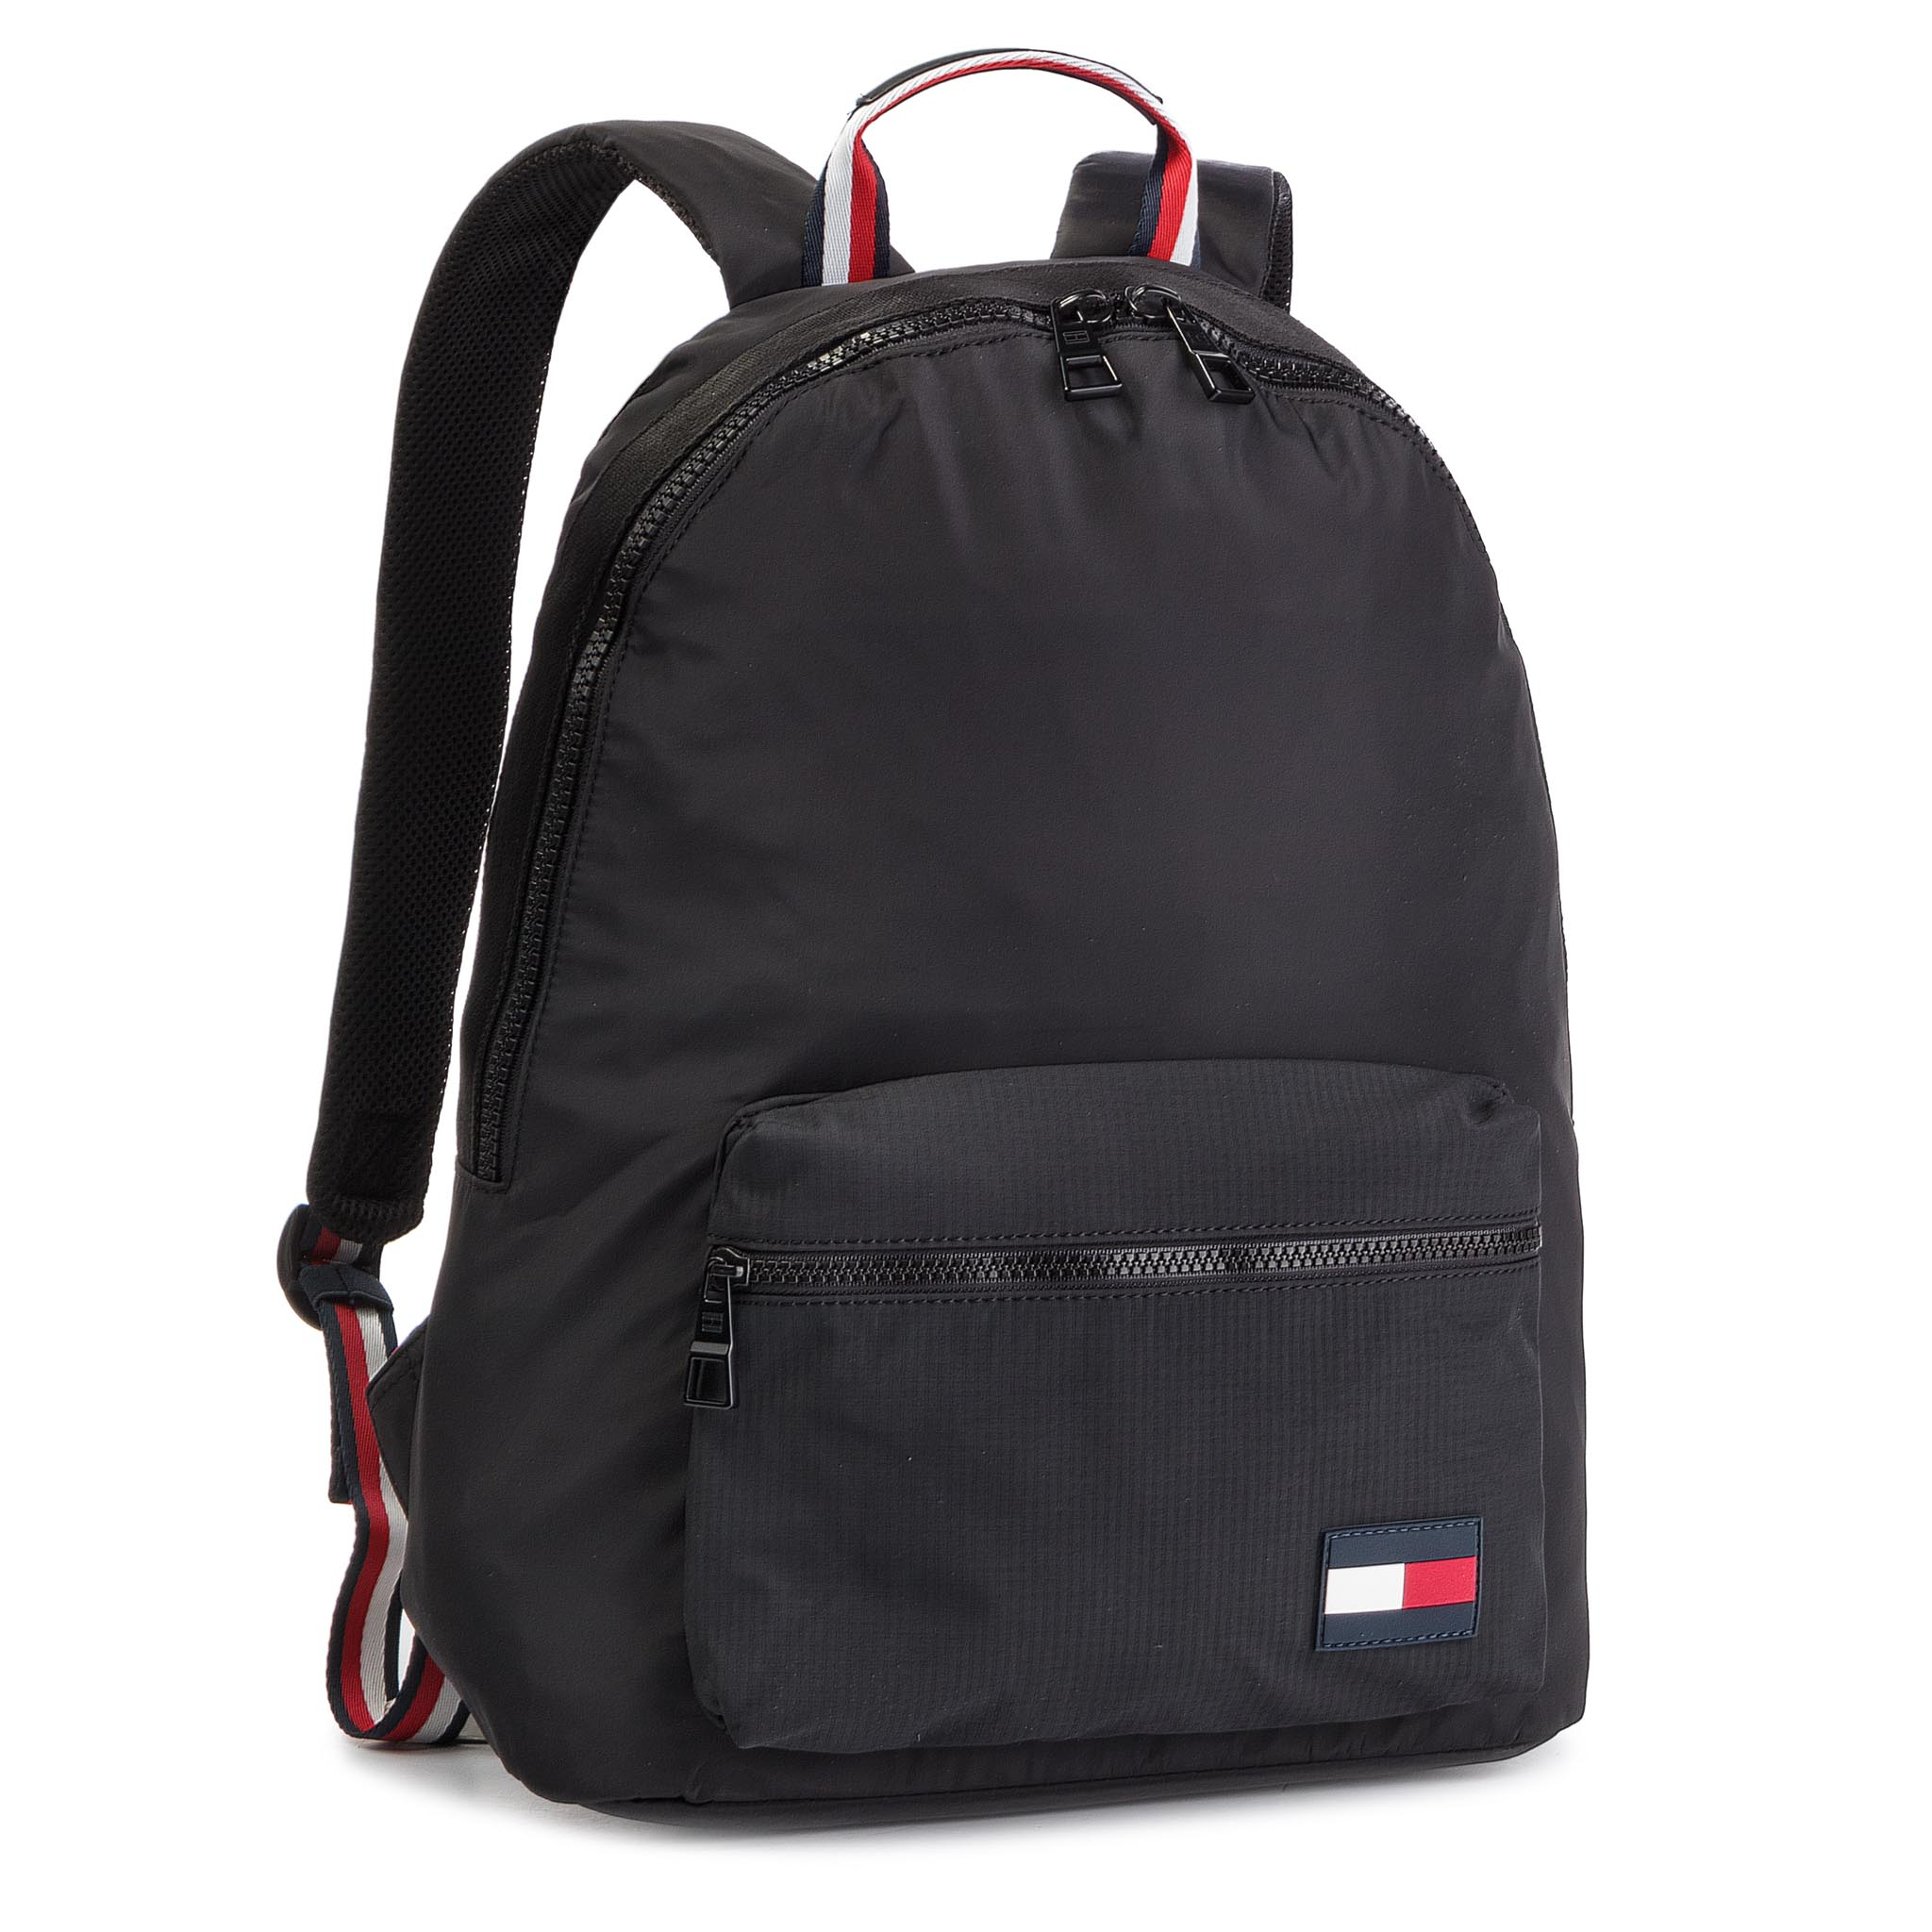 5c1a5d1a9 Batoh TOMMY HILFIGER - Tommy Backpack Sports Tape AM0AM04630 002